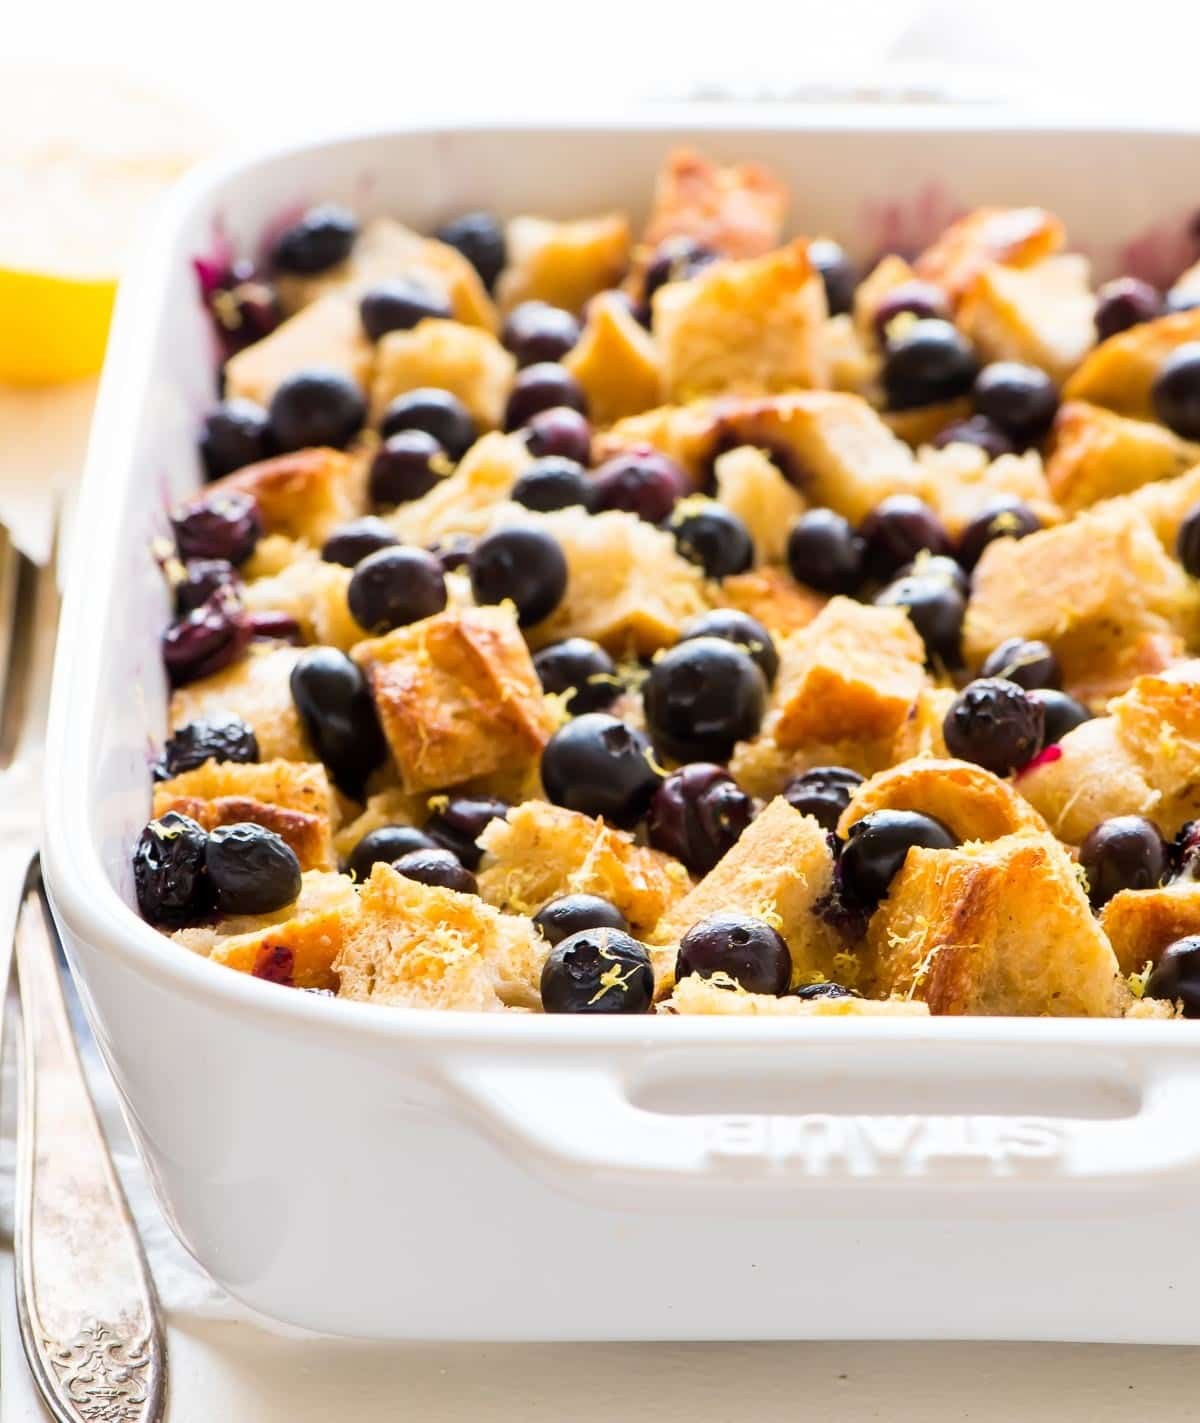 Blueberry French toast casserole in a baking dish